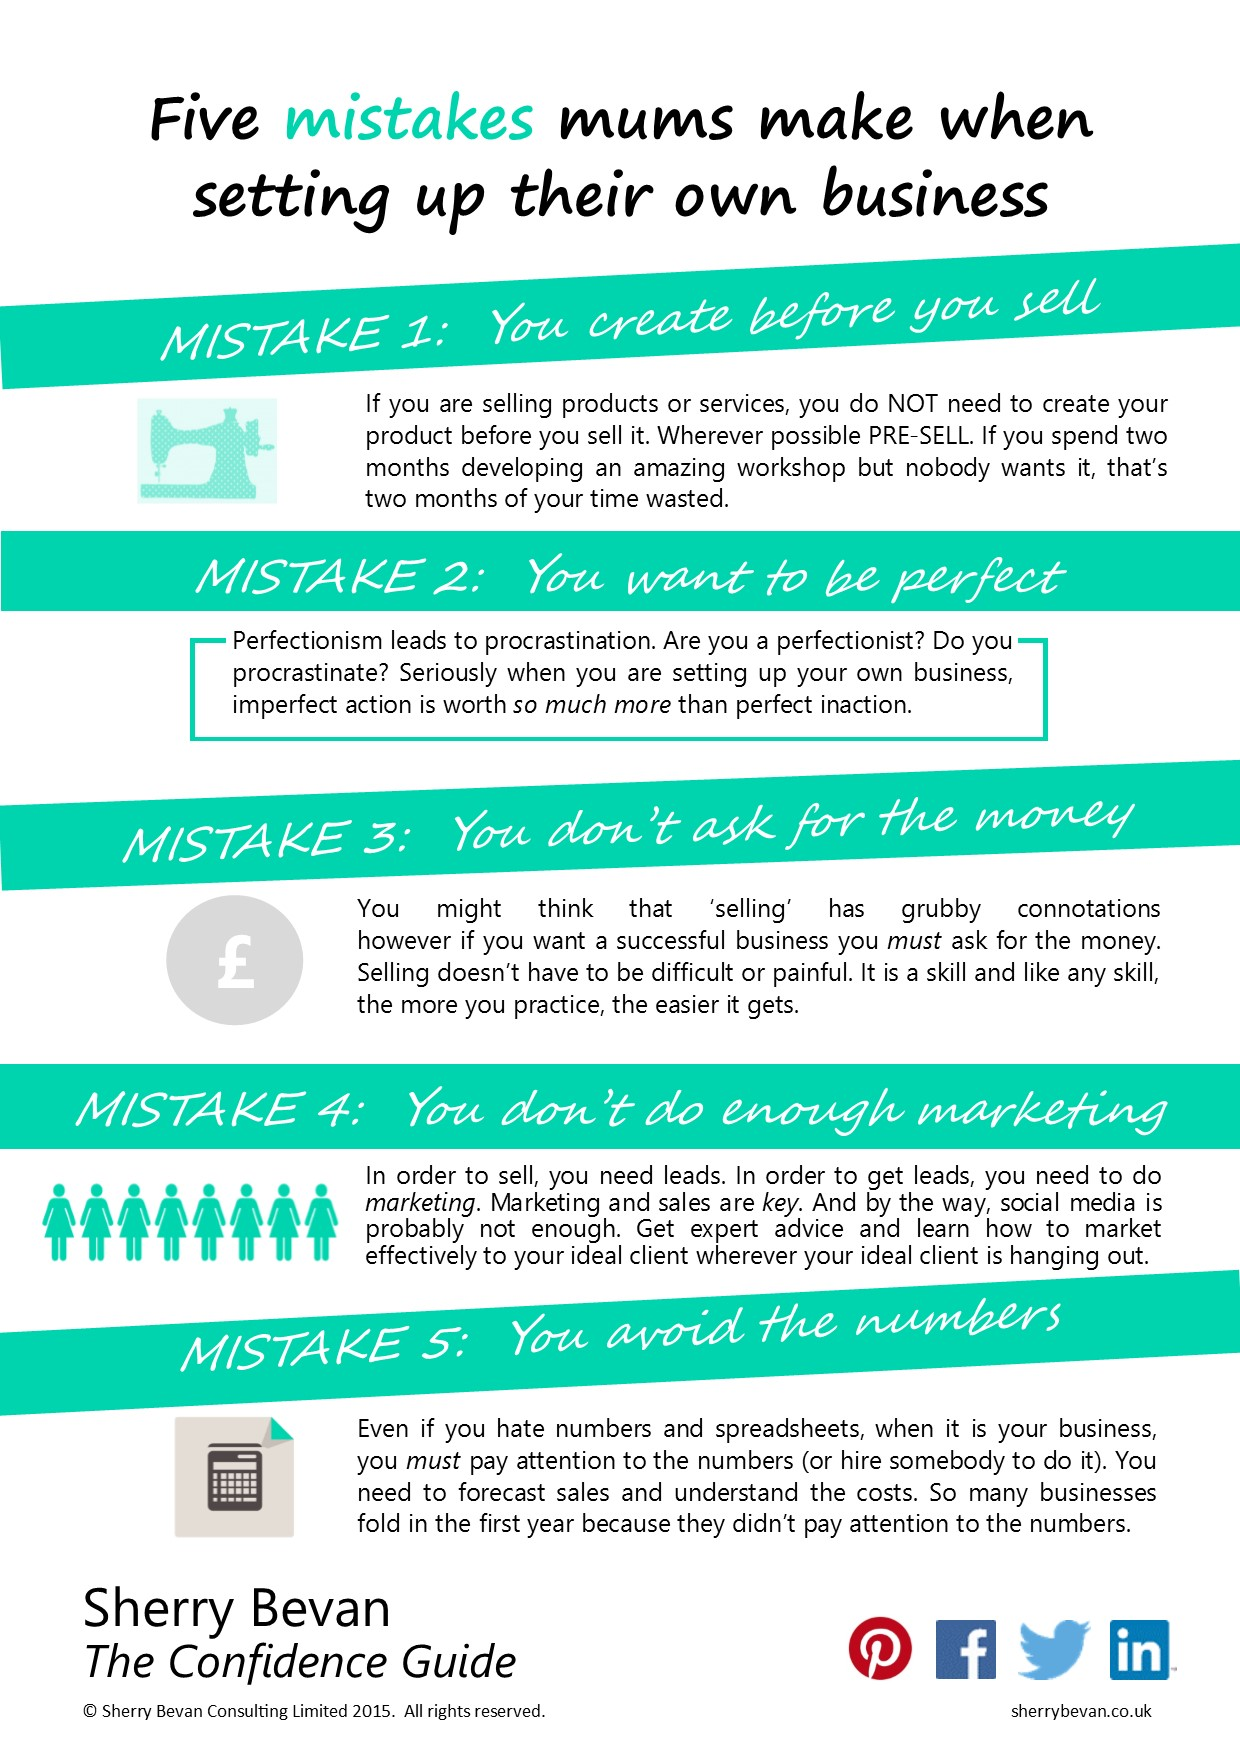 Top 5 mistakes mums make when setting up their own business INFOGRAPHIC